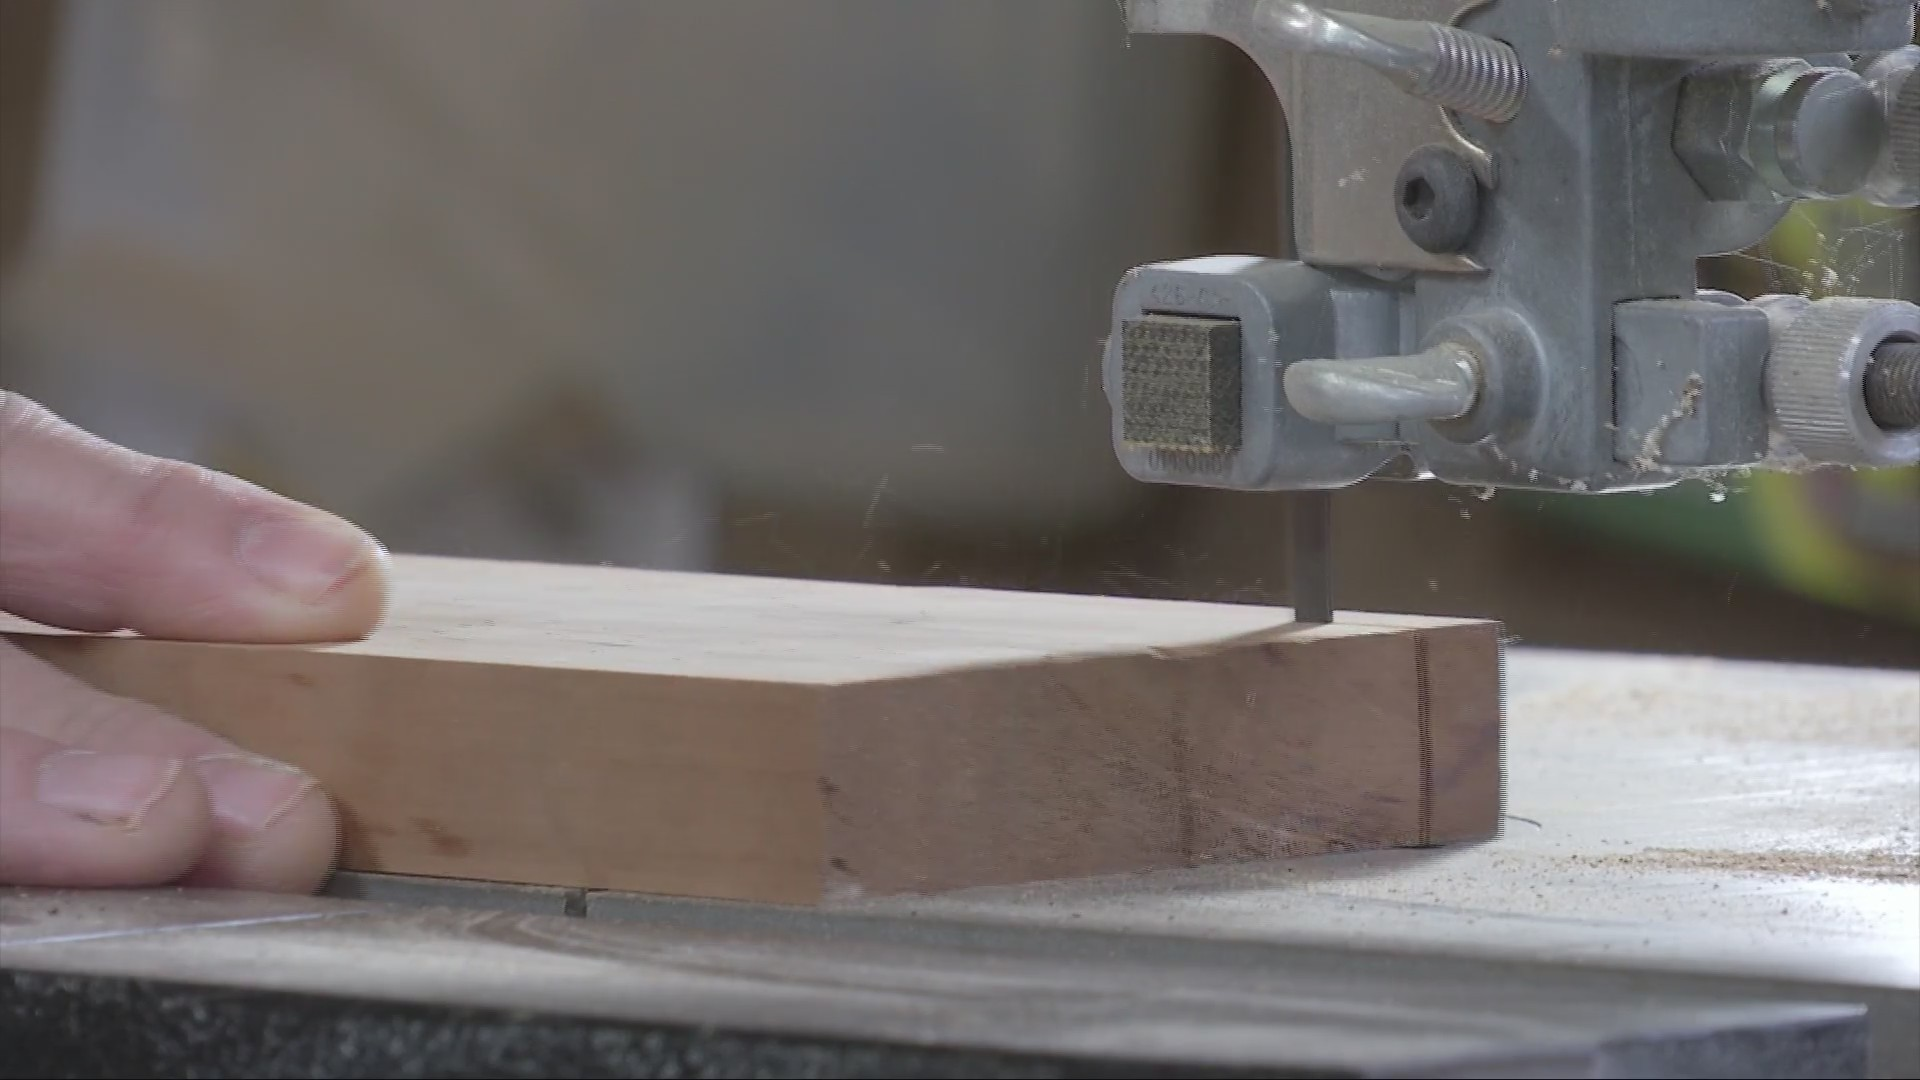 Local woodworker takes his craftsmanship to next level, TV